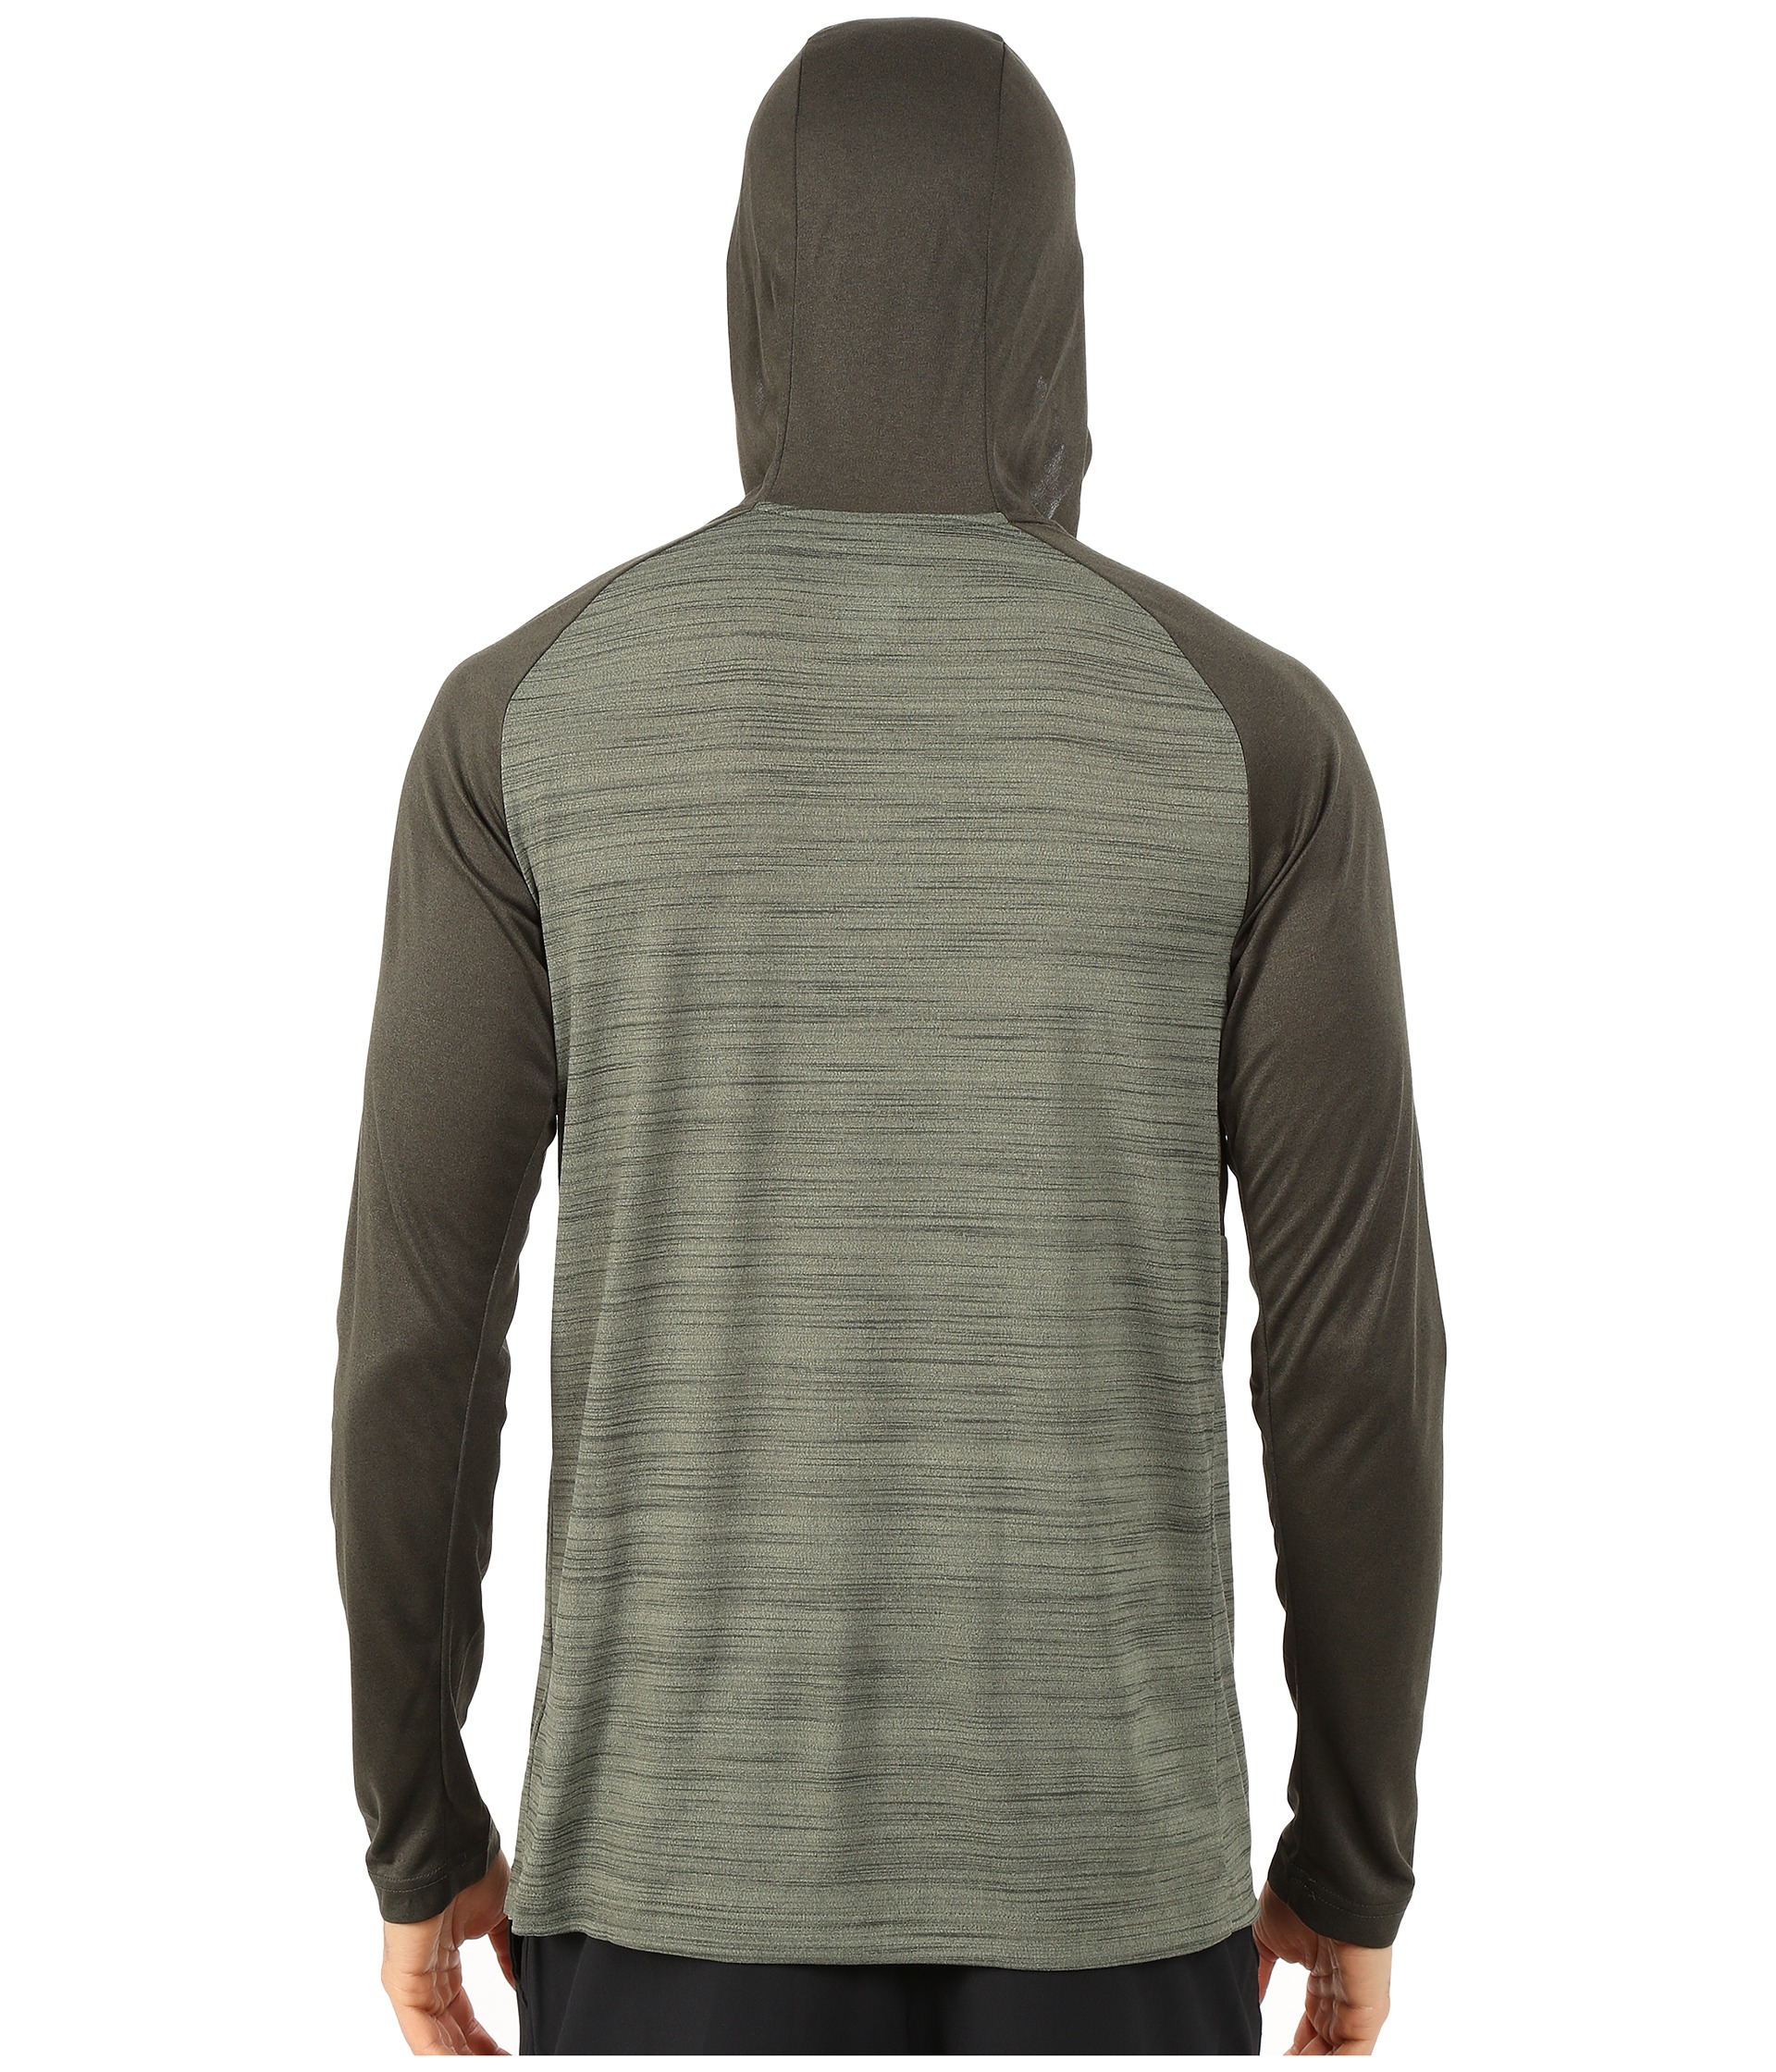 Nike dri fit touch long sleeve hoodie in green for men lyst for Under armour dri fit long sleeve shirts